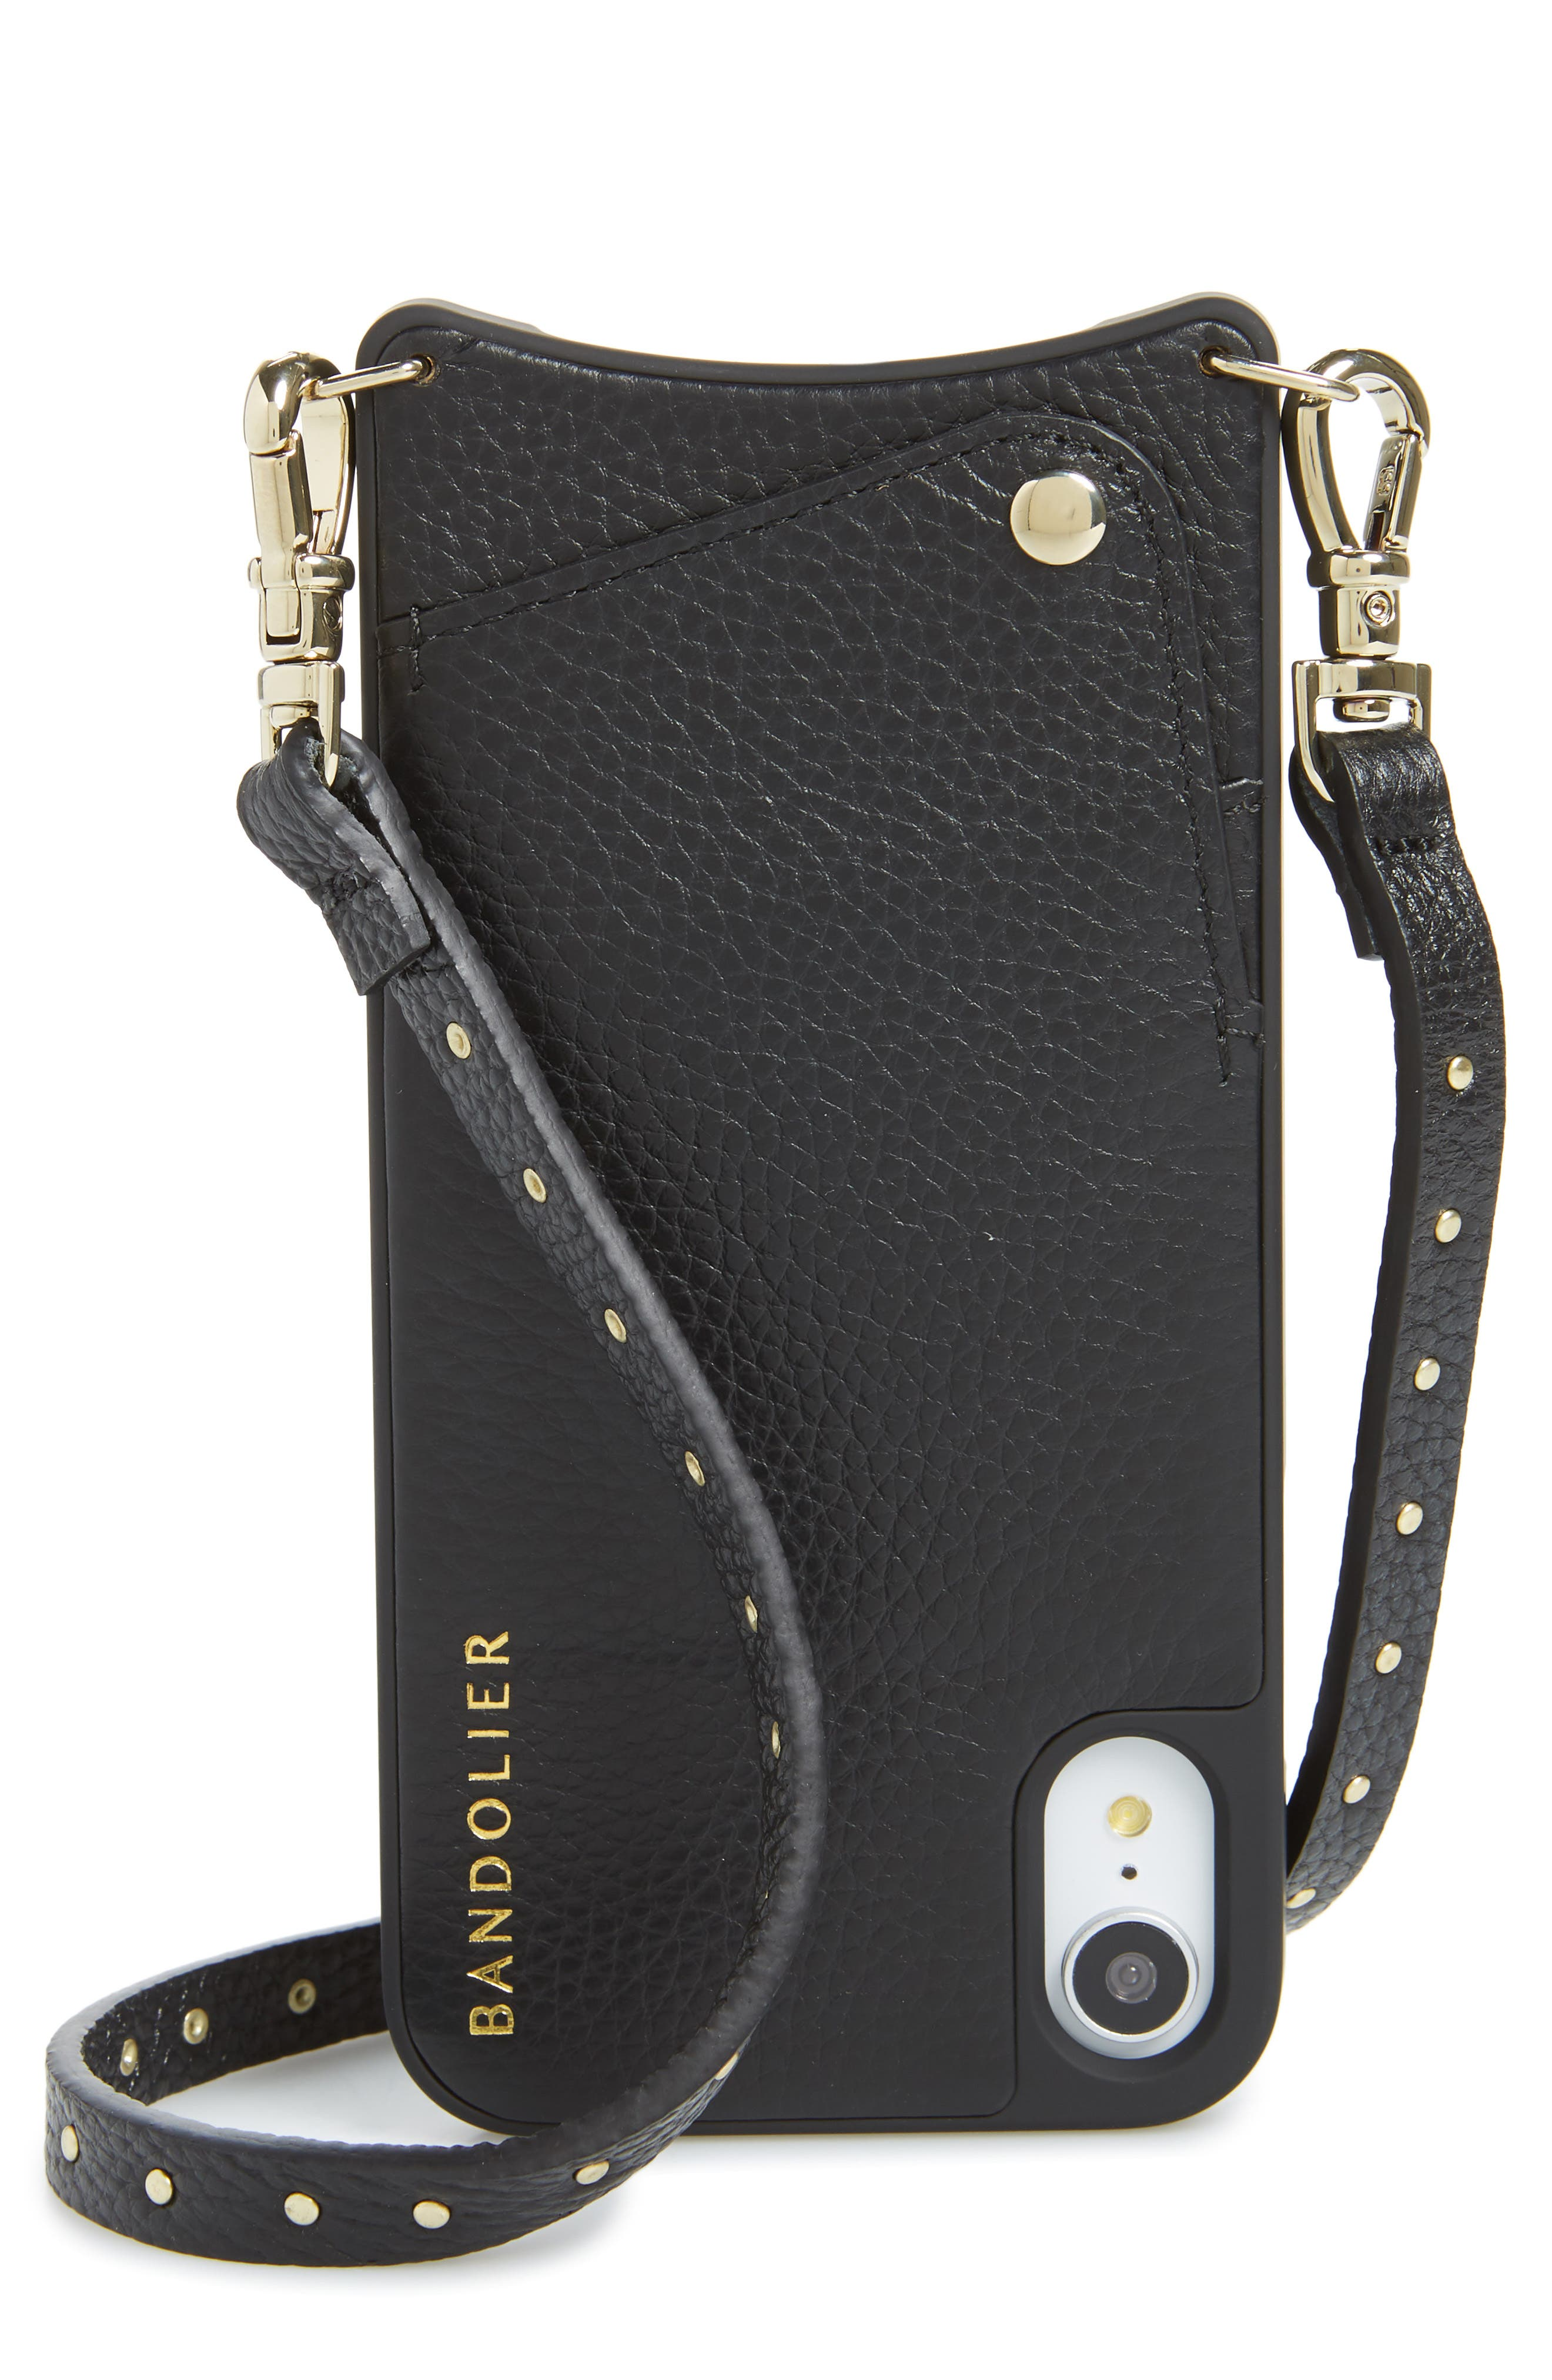 BANDOLIER, Nicole Pebbled Leather X/Xs/Xs Max & XR Crossbody Case, Main thumbnail 1, color, BLACK/ GOLD